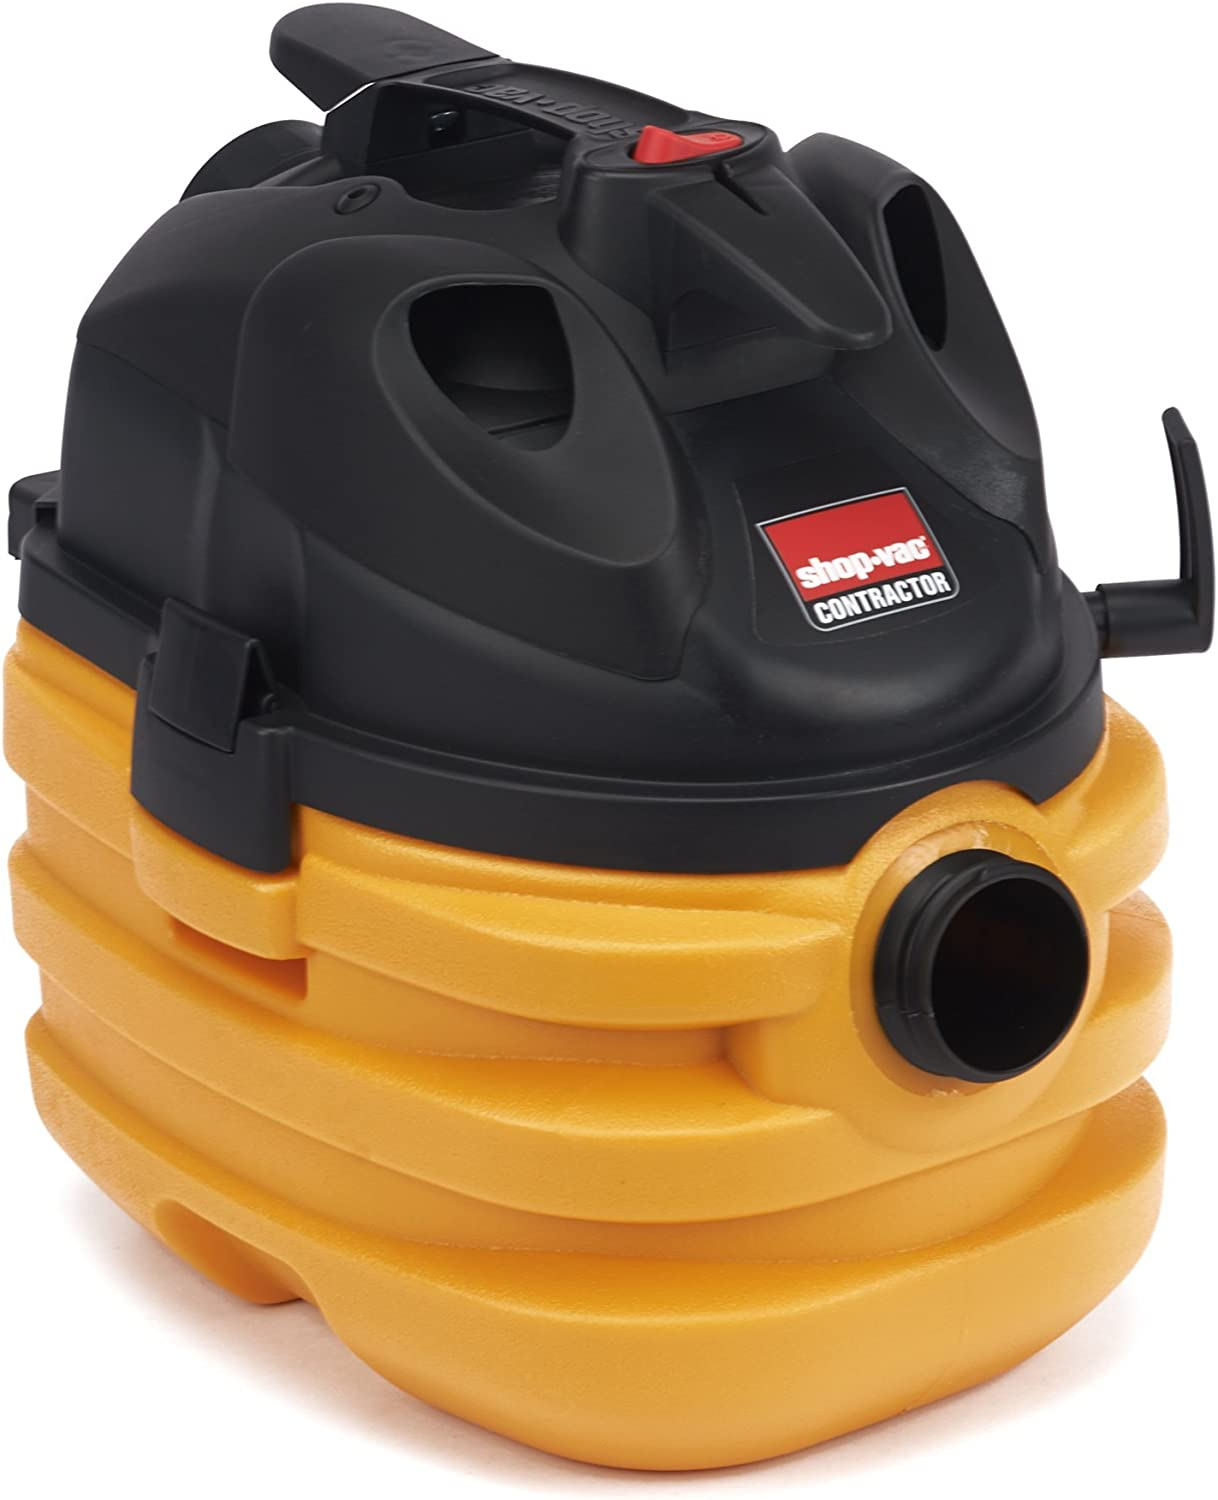 Shop-Vac 5872810 6.0 Peak HP Heavy Duty Portable Vacuum 5 Gallon Yellow Black with Cord & Tool Storage & Multifunction Accessories, Uses Type BB Cartridge Filter & Type H Filter Bag